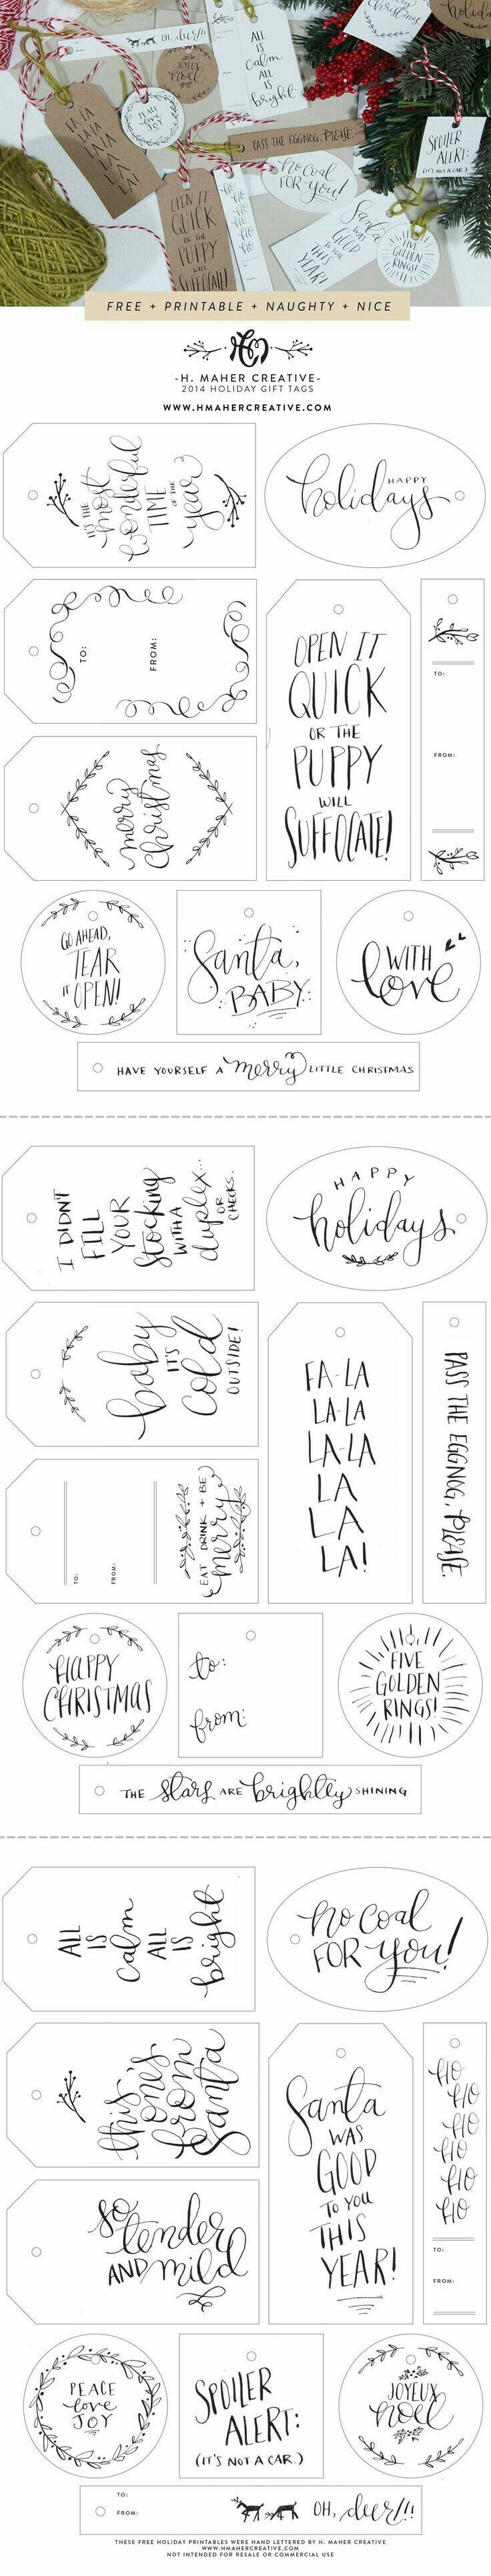 Best 25 homemade gift tags ideas on pinterest diy christmas naughty nice 30 free hand lettered holiday gift tag printables from h maher creative the puppy one is my favorite solutioingenieria